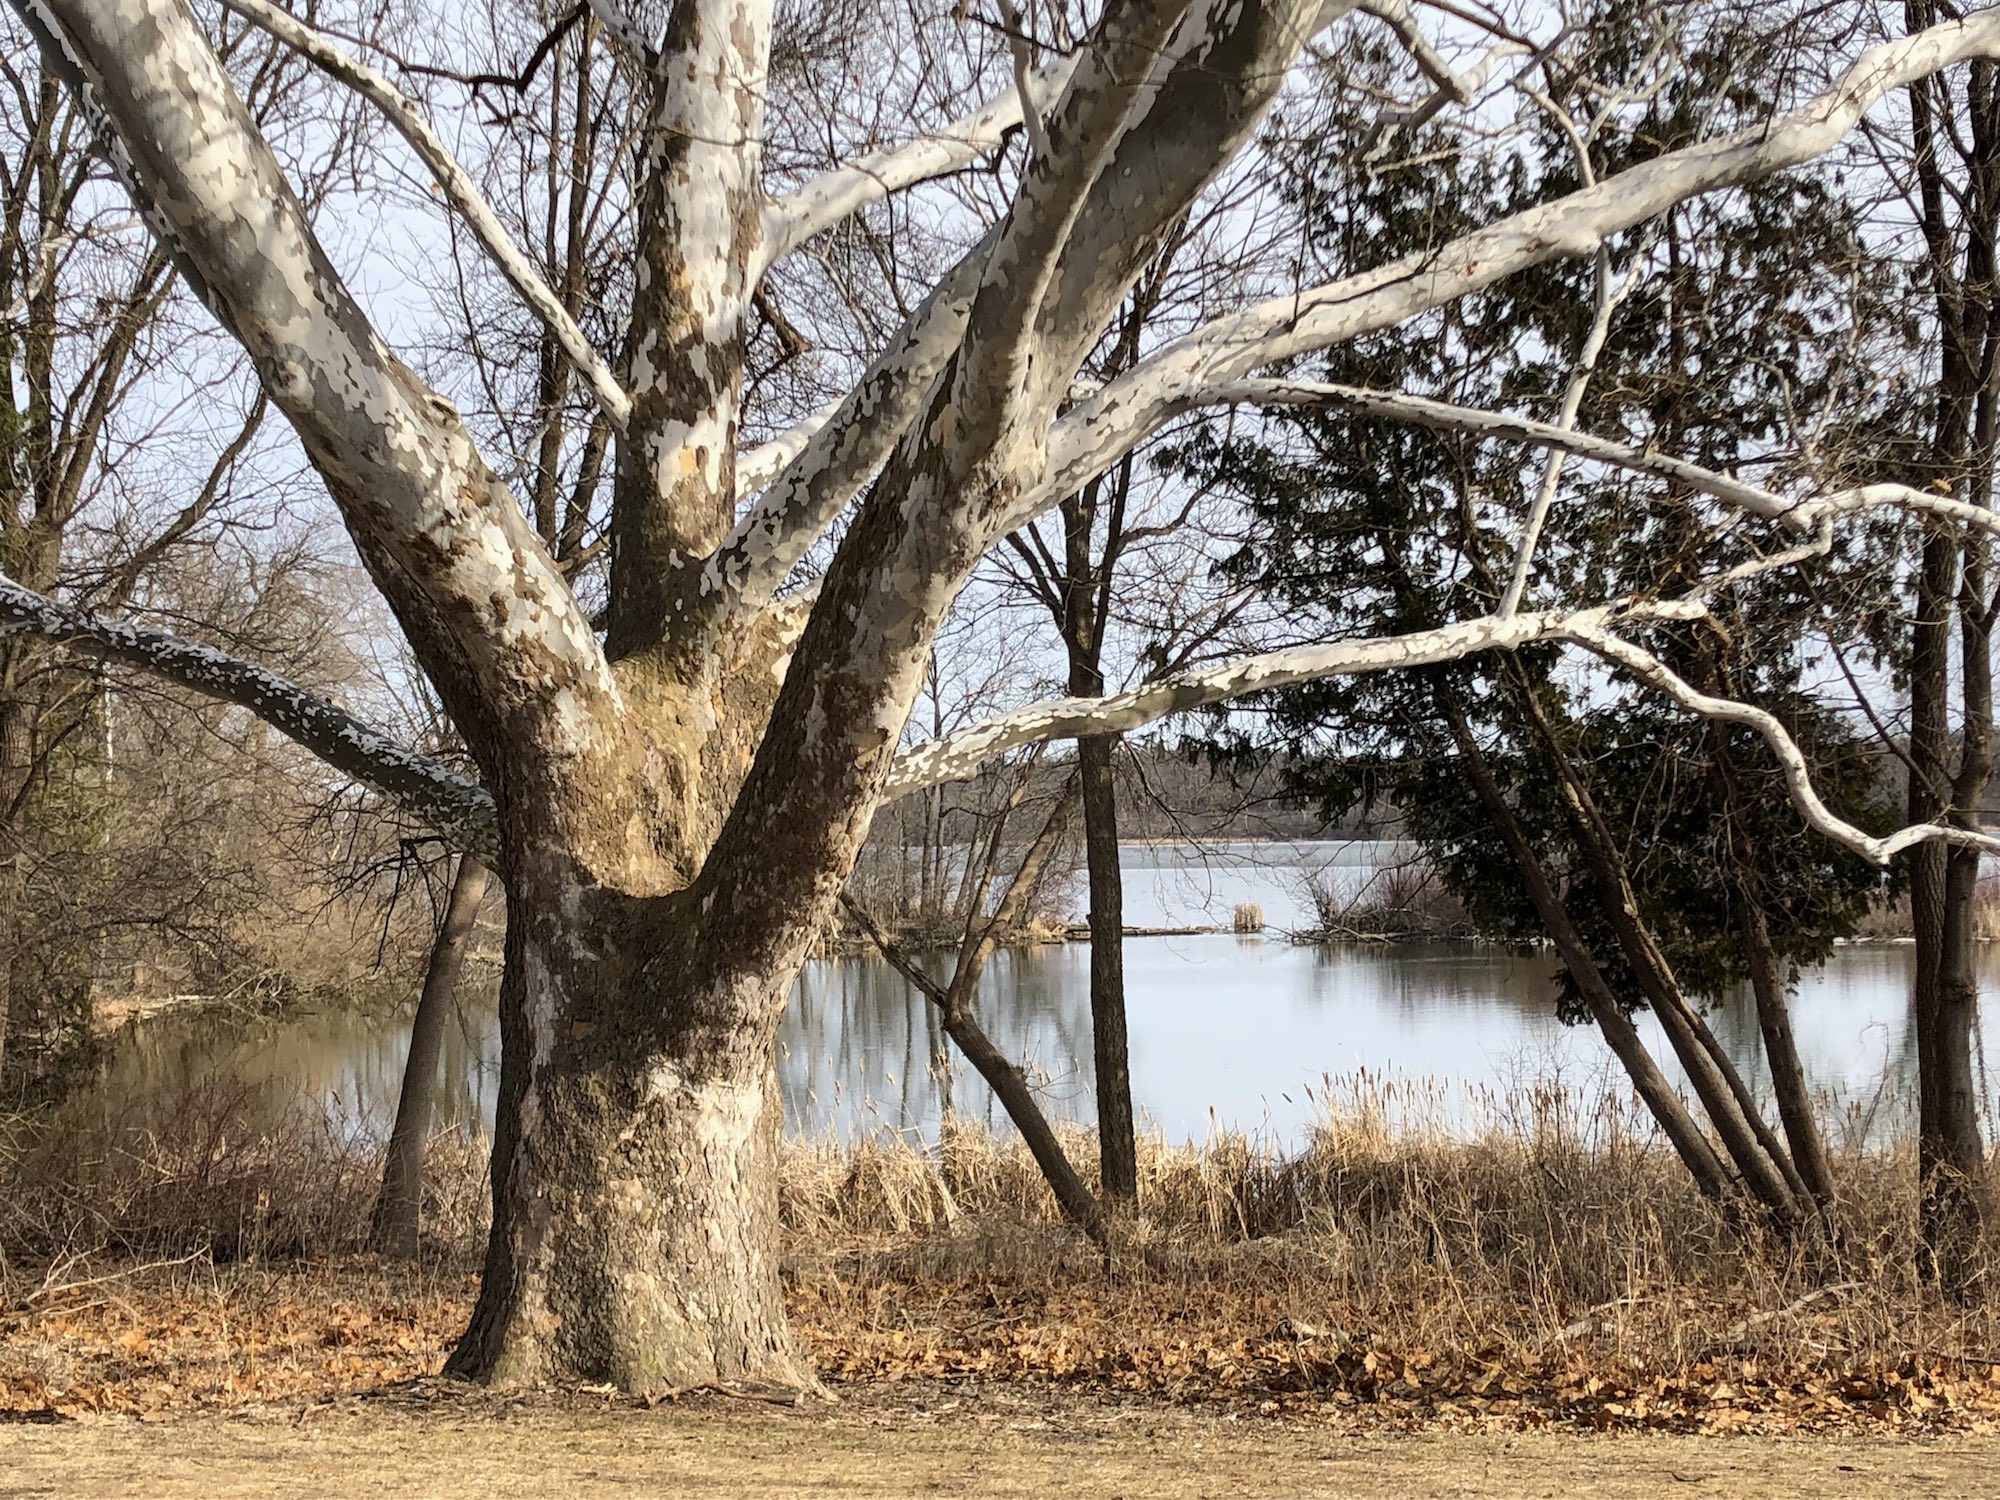 Sycamore tree between Ho-Nee-Um Pond and Arbor Drive on north shore of Lake Wingra on March 20, 2018.